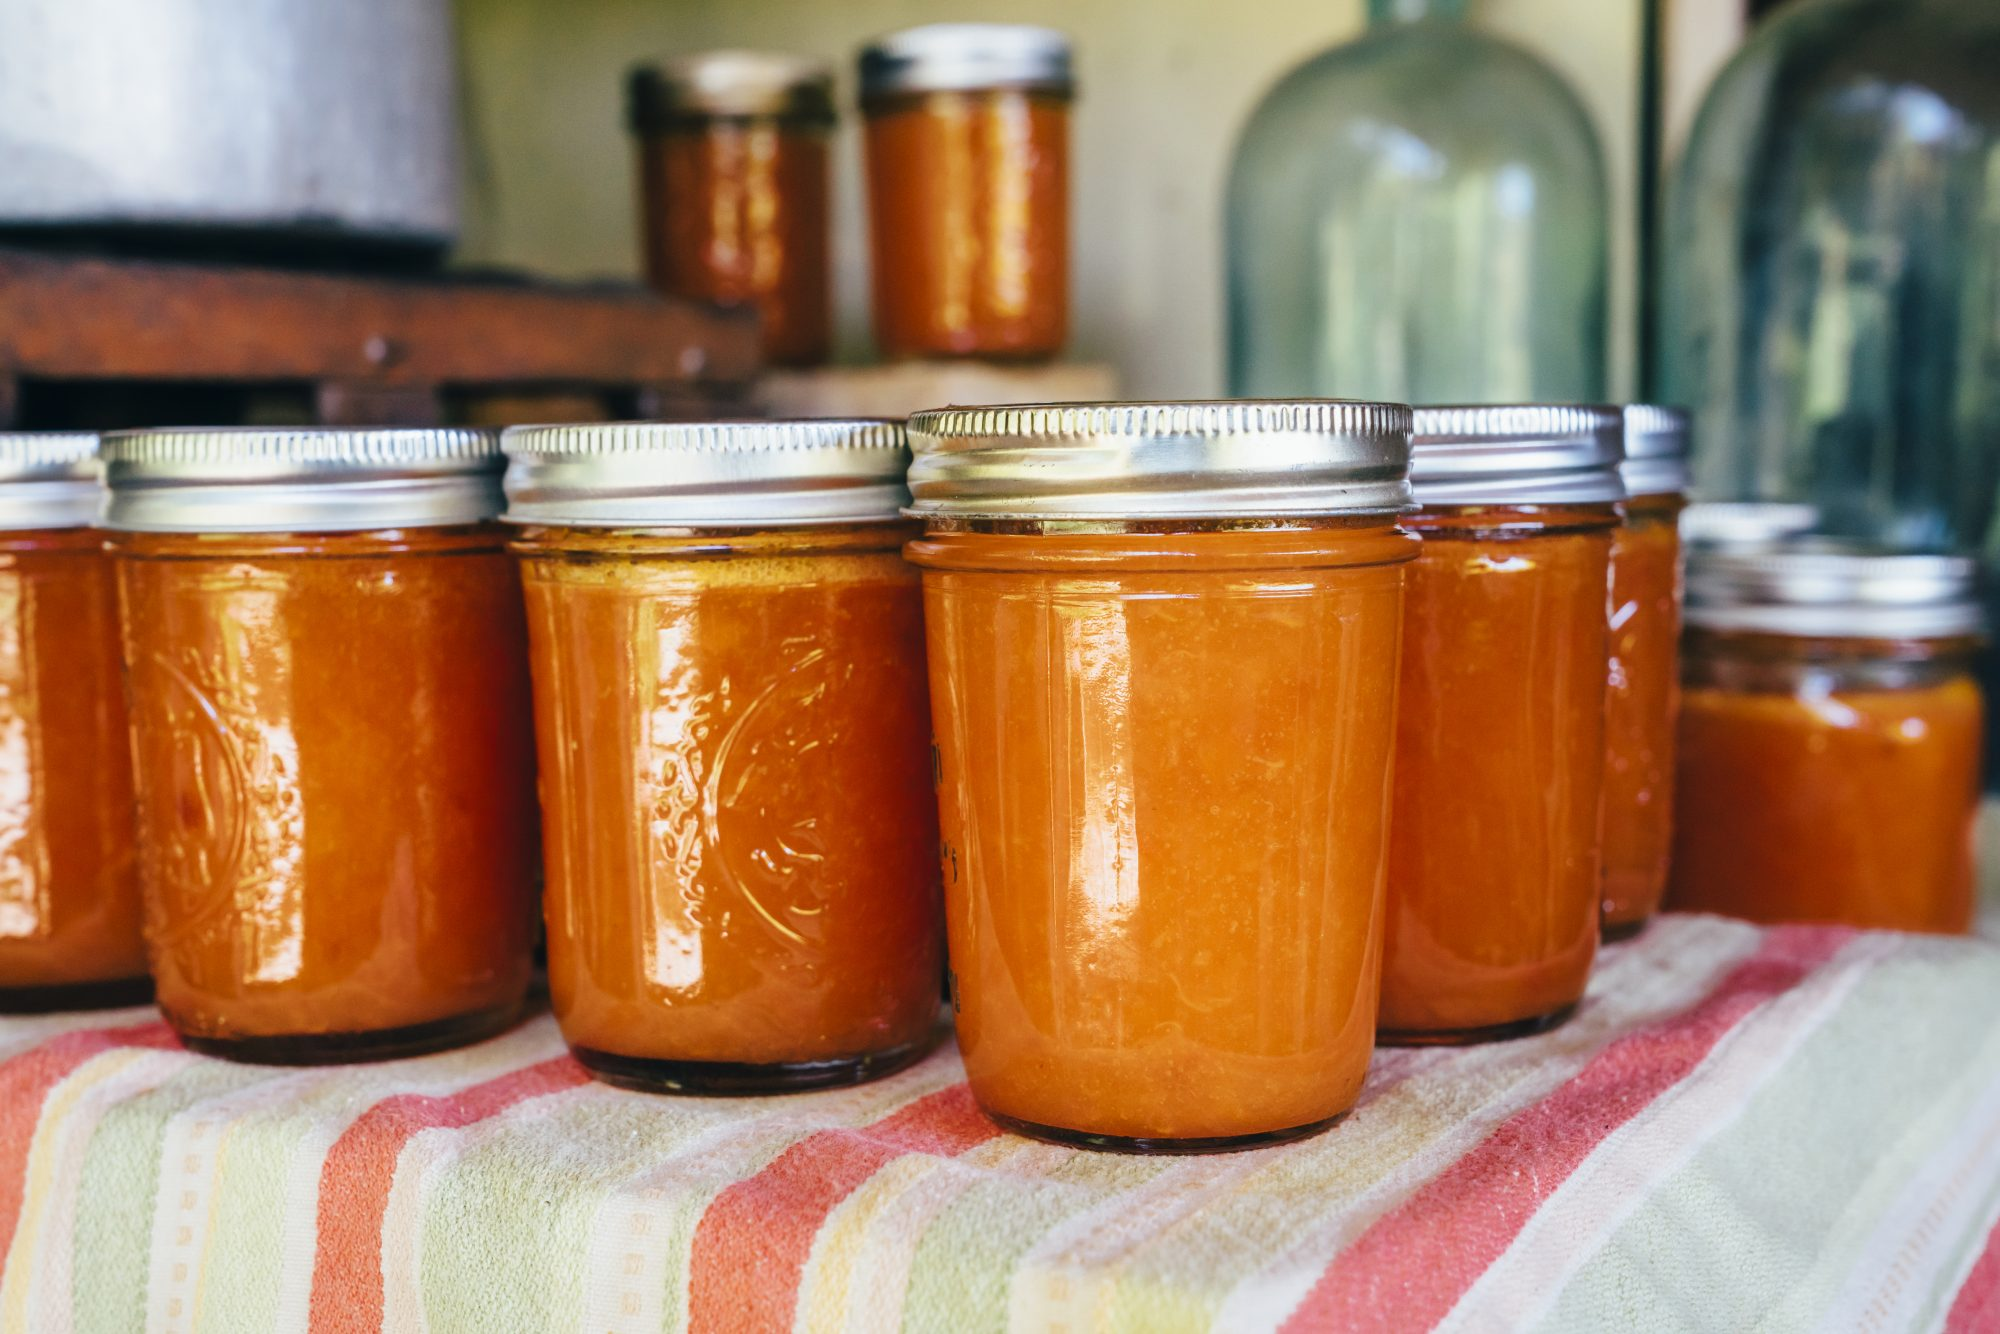 Jars of peach jam on table